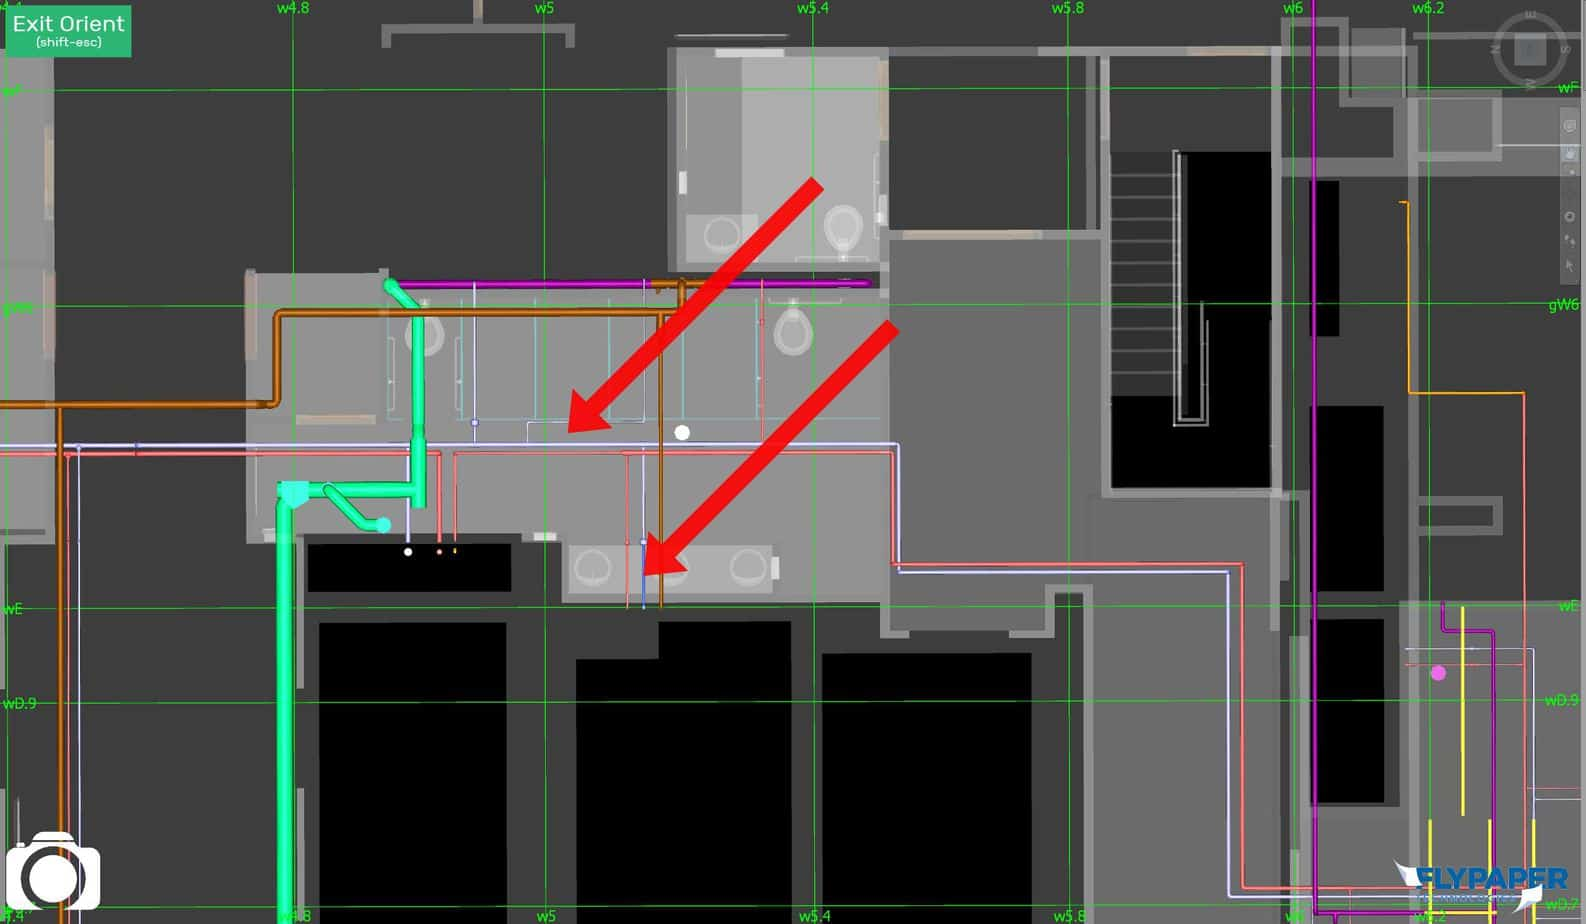 Select something in the Architectural model and something in the plumbing model to review fixture connections.